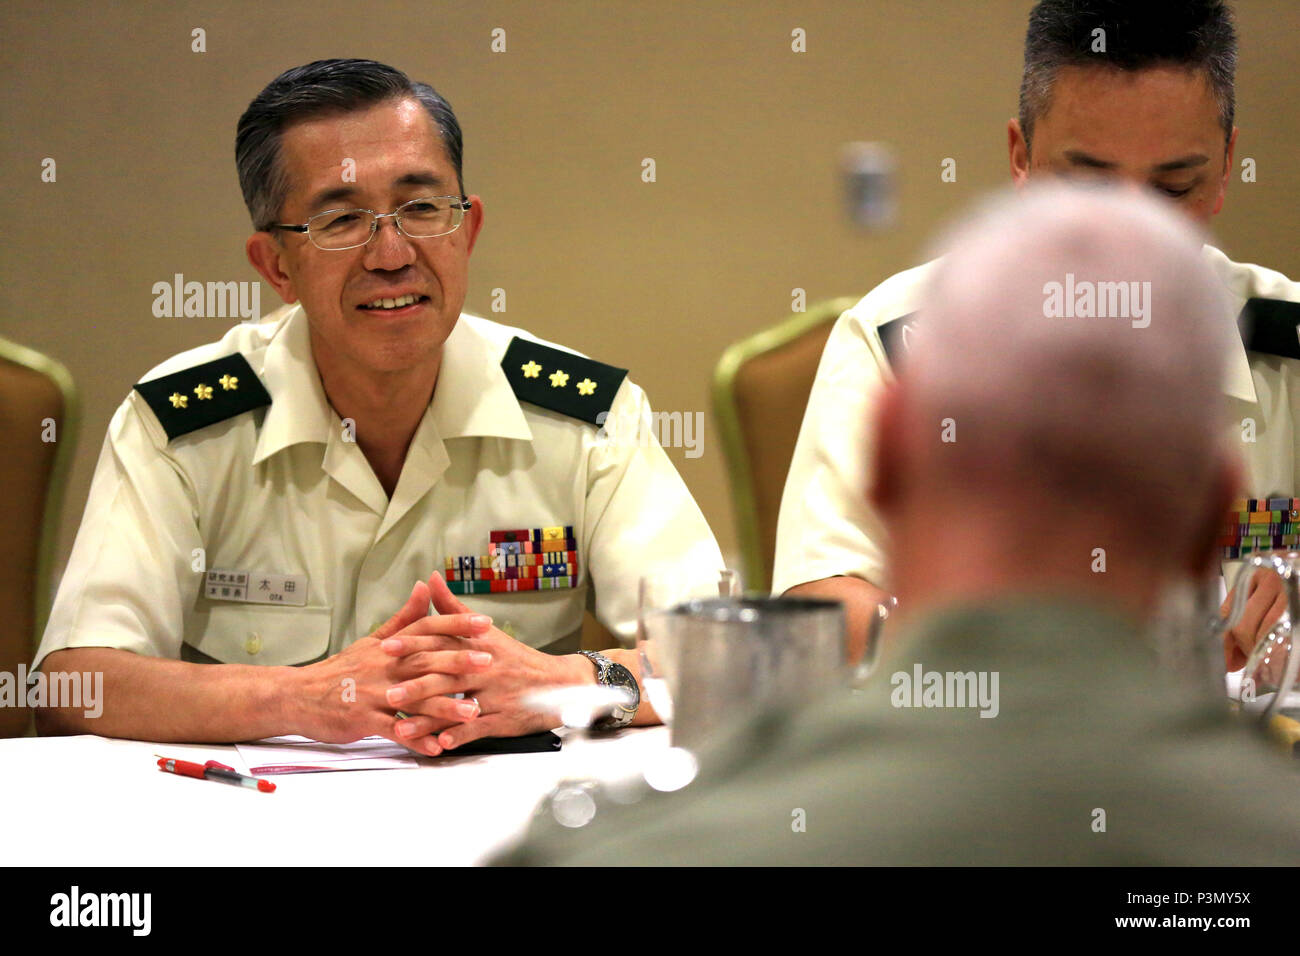 Japanese Lt. Gen. Makiya Ota, commanding general, Japan Ground Self Defense Force Research and Development, speaks with U.S. Marine Corps Lt. Gen. John A Toolan, commanding general, Fleet Marine Force, Pacific, during a group meeting at the Pacific Command Amphibious Leaders Symposium 2016 in San Diego, Calif., July 11.  PALS brings together senior leaders of allied and partner nations from the Indo-Asia Pacific region to discuss key aspects of maritime/amphibious operations, capability development, crisis response, and interoperability. Closer military-to-military bonds facilitate clear lines Stock Photo